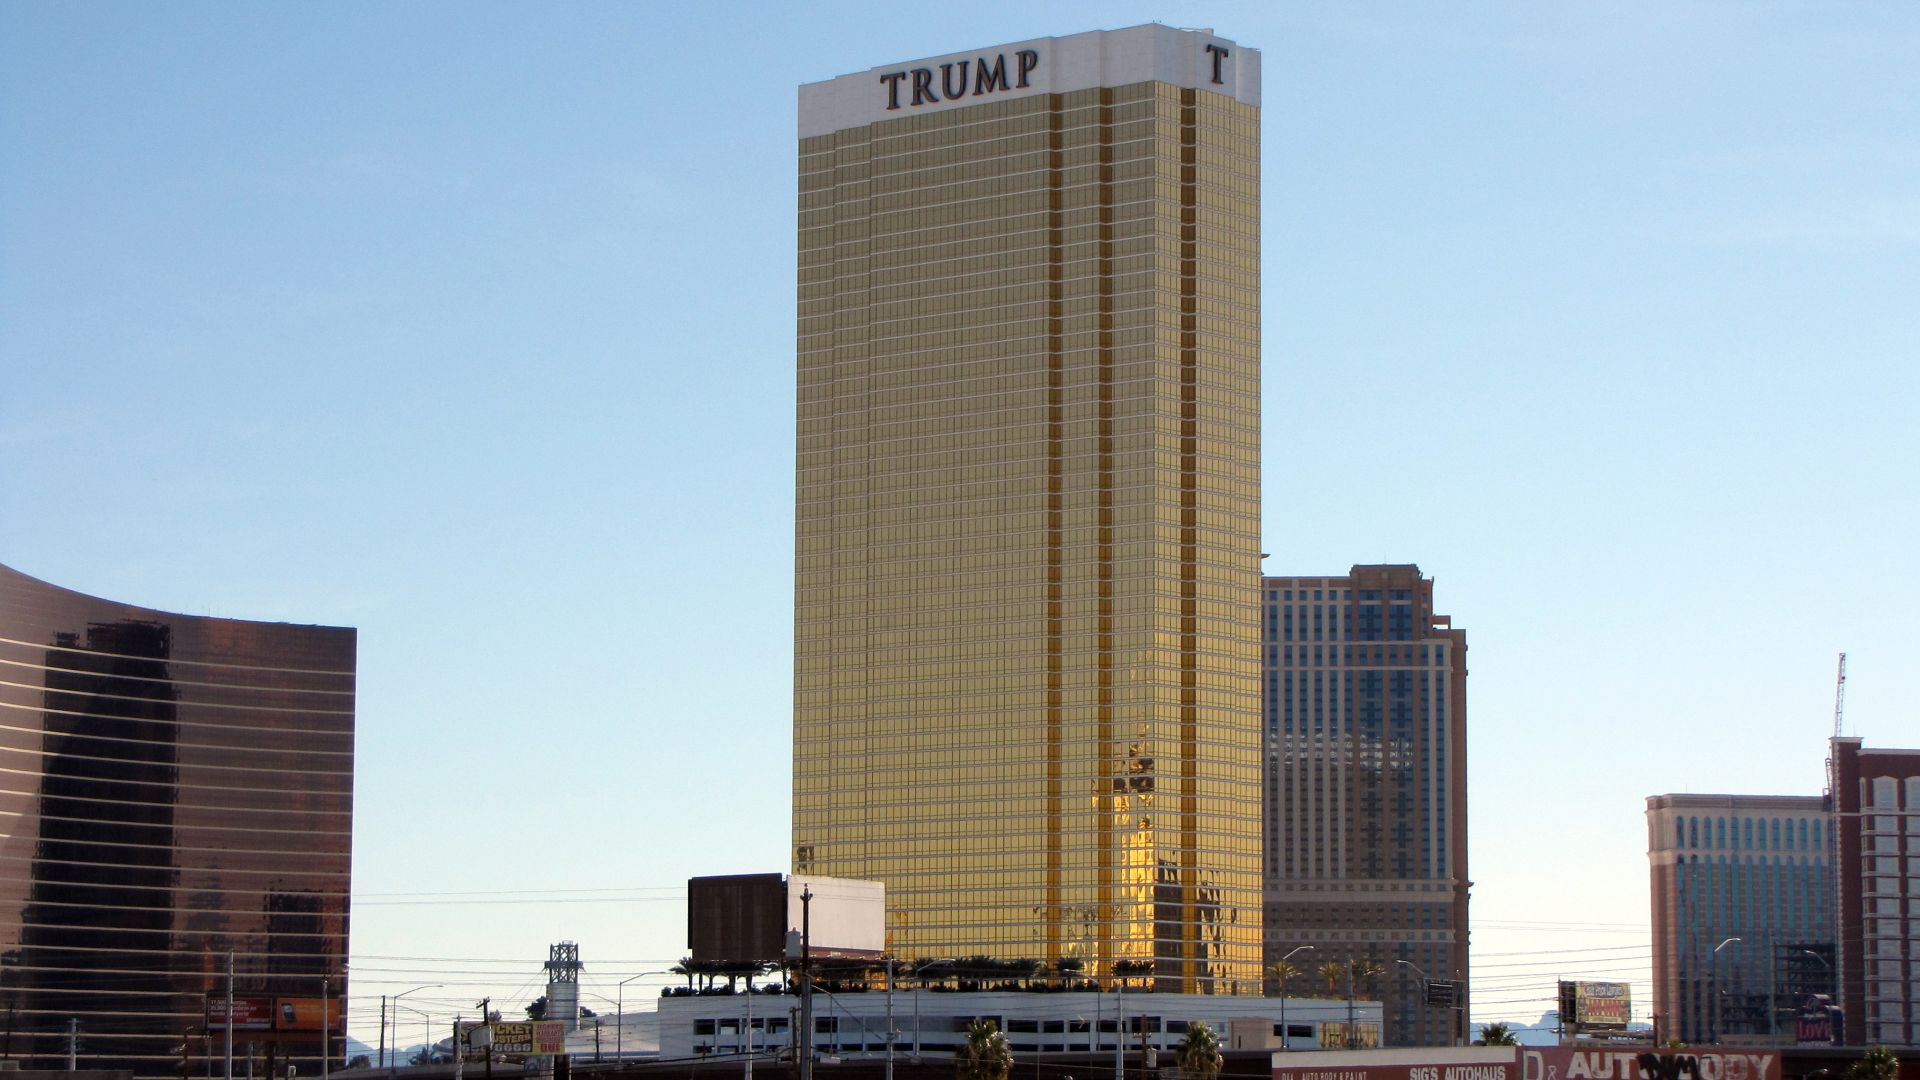 ТРАМП, отель, Лас Вегас, USA, TRUMP, hotel, Las Vegas, USA (horizontal)